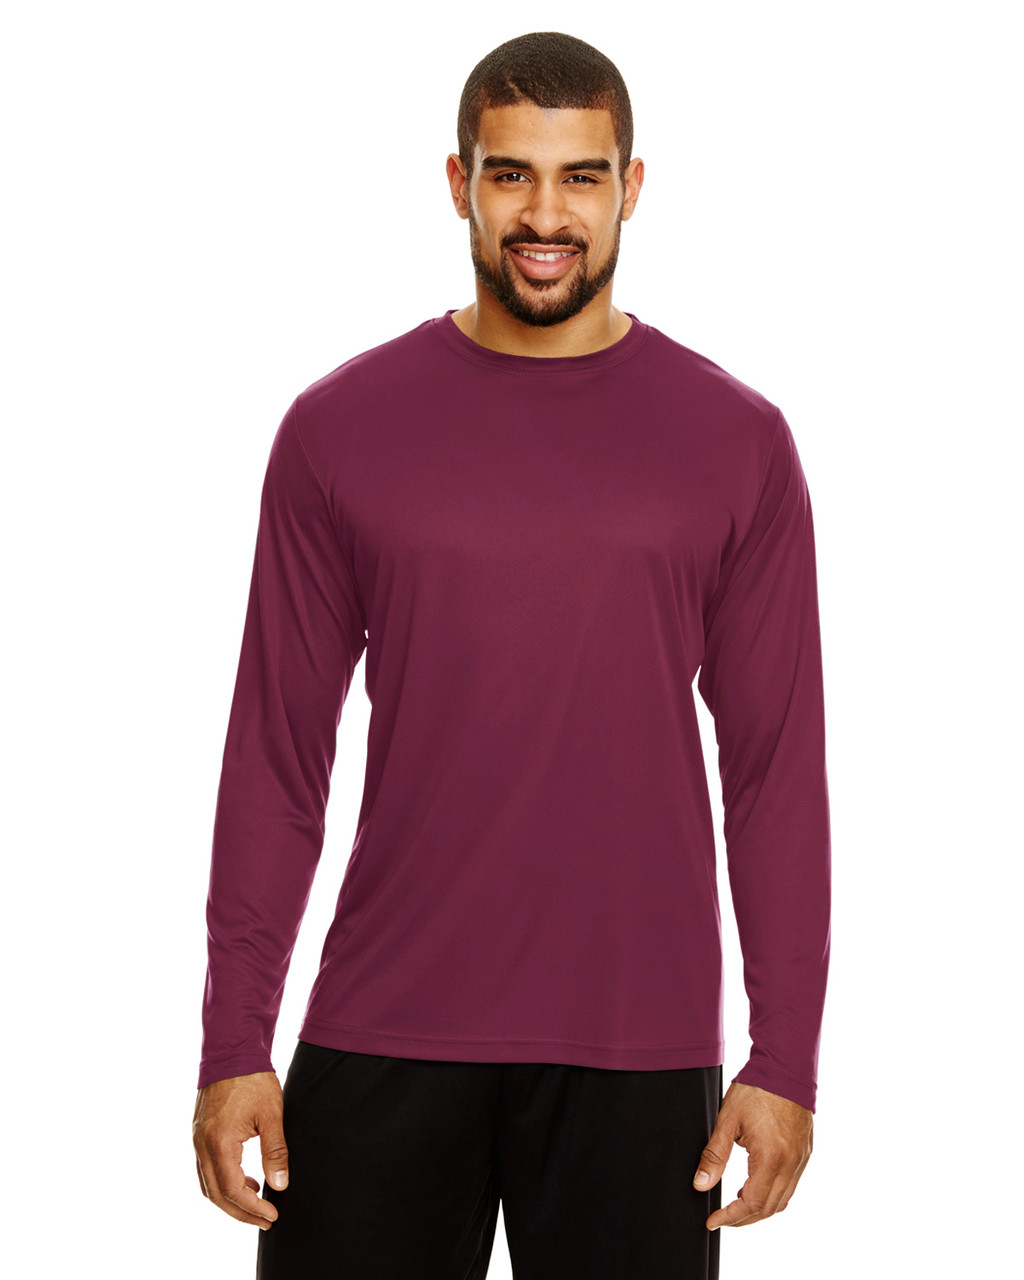 Sport Maroon - TT11L Team 365 Men's Zone Performance Long Sleeve T-Shirt | BlankClothing.ca